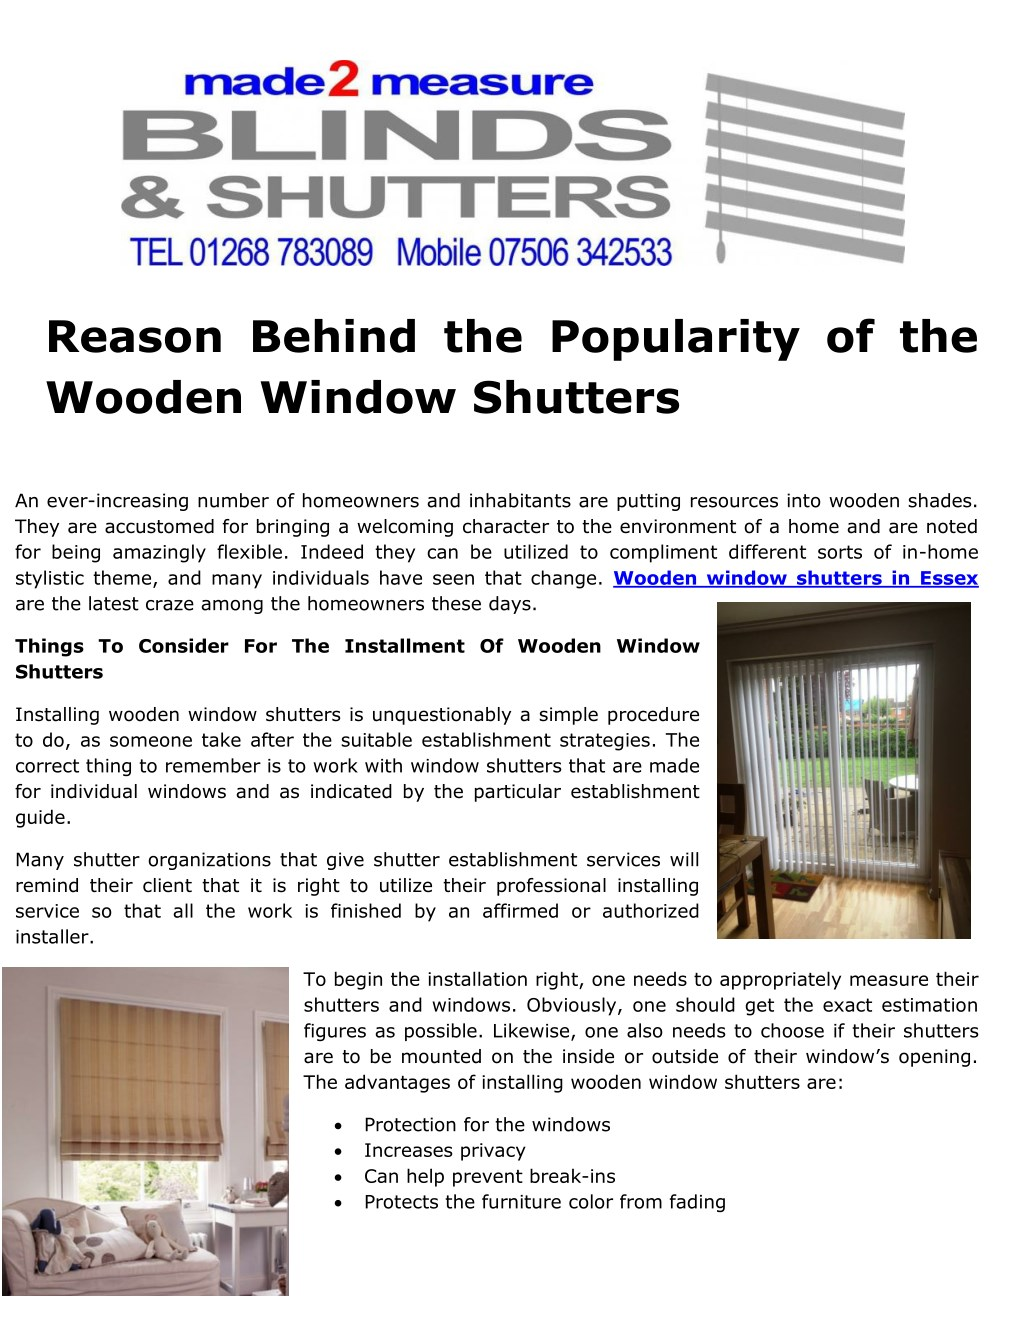 Ppt Reason Behind The Popularity Of The Wooden Window